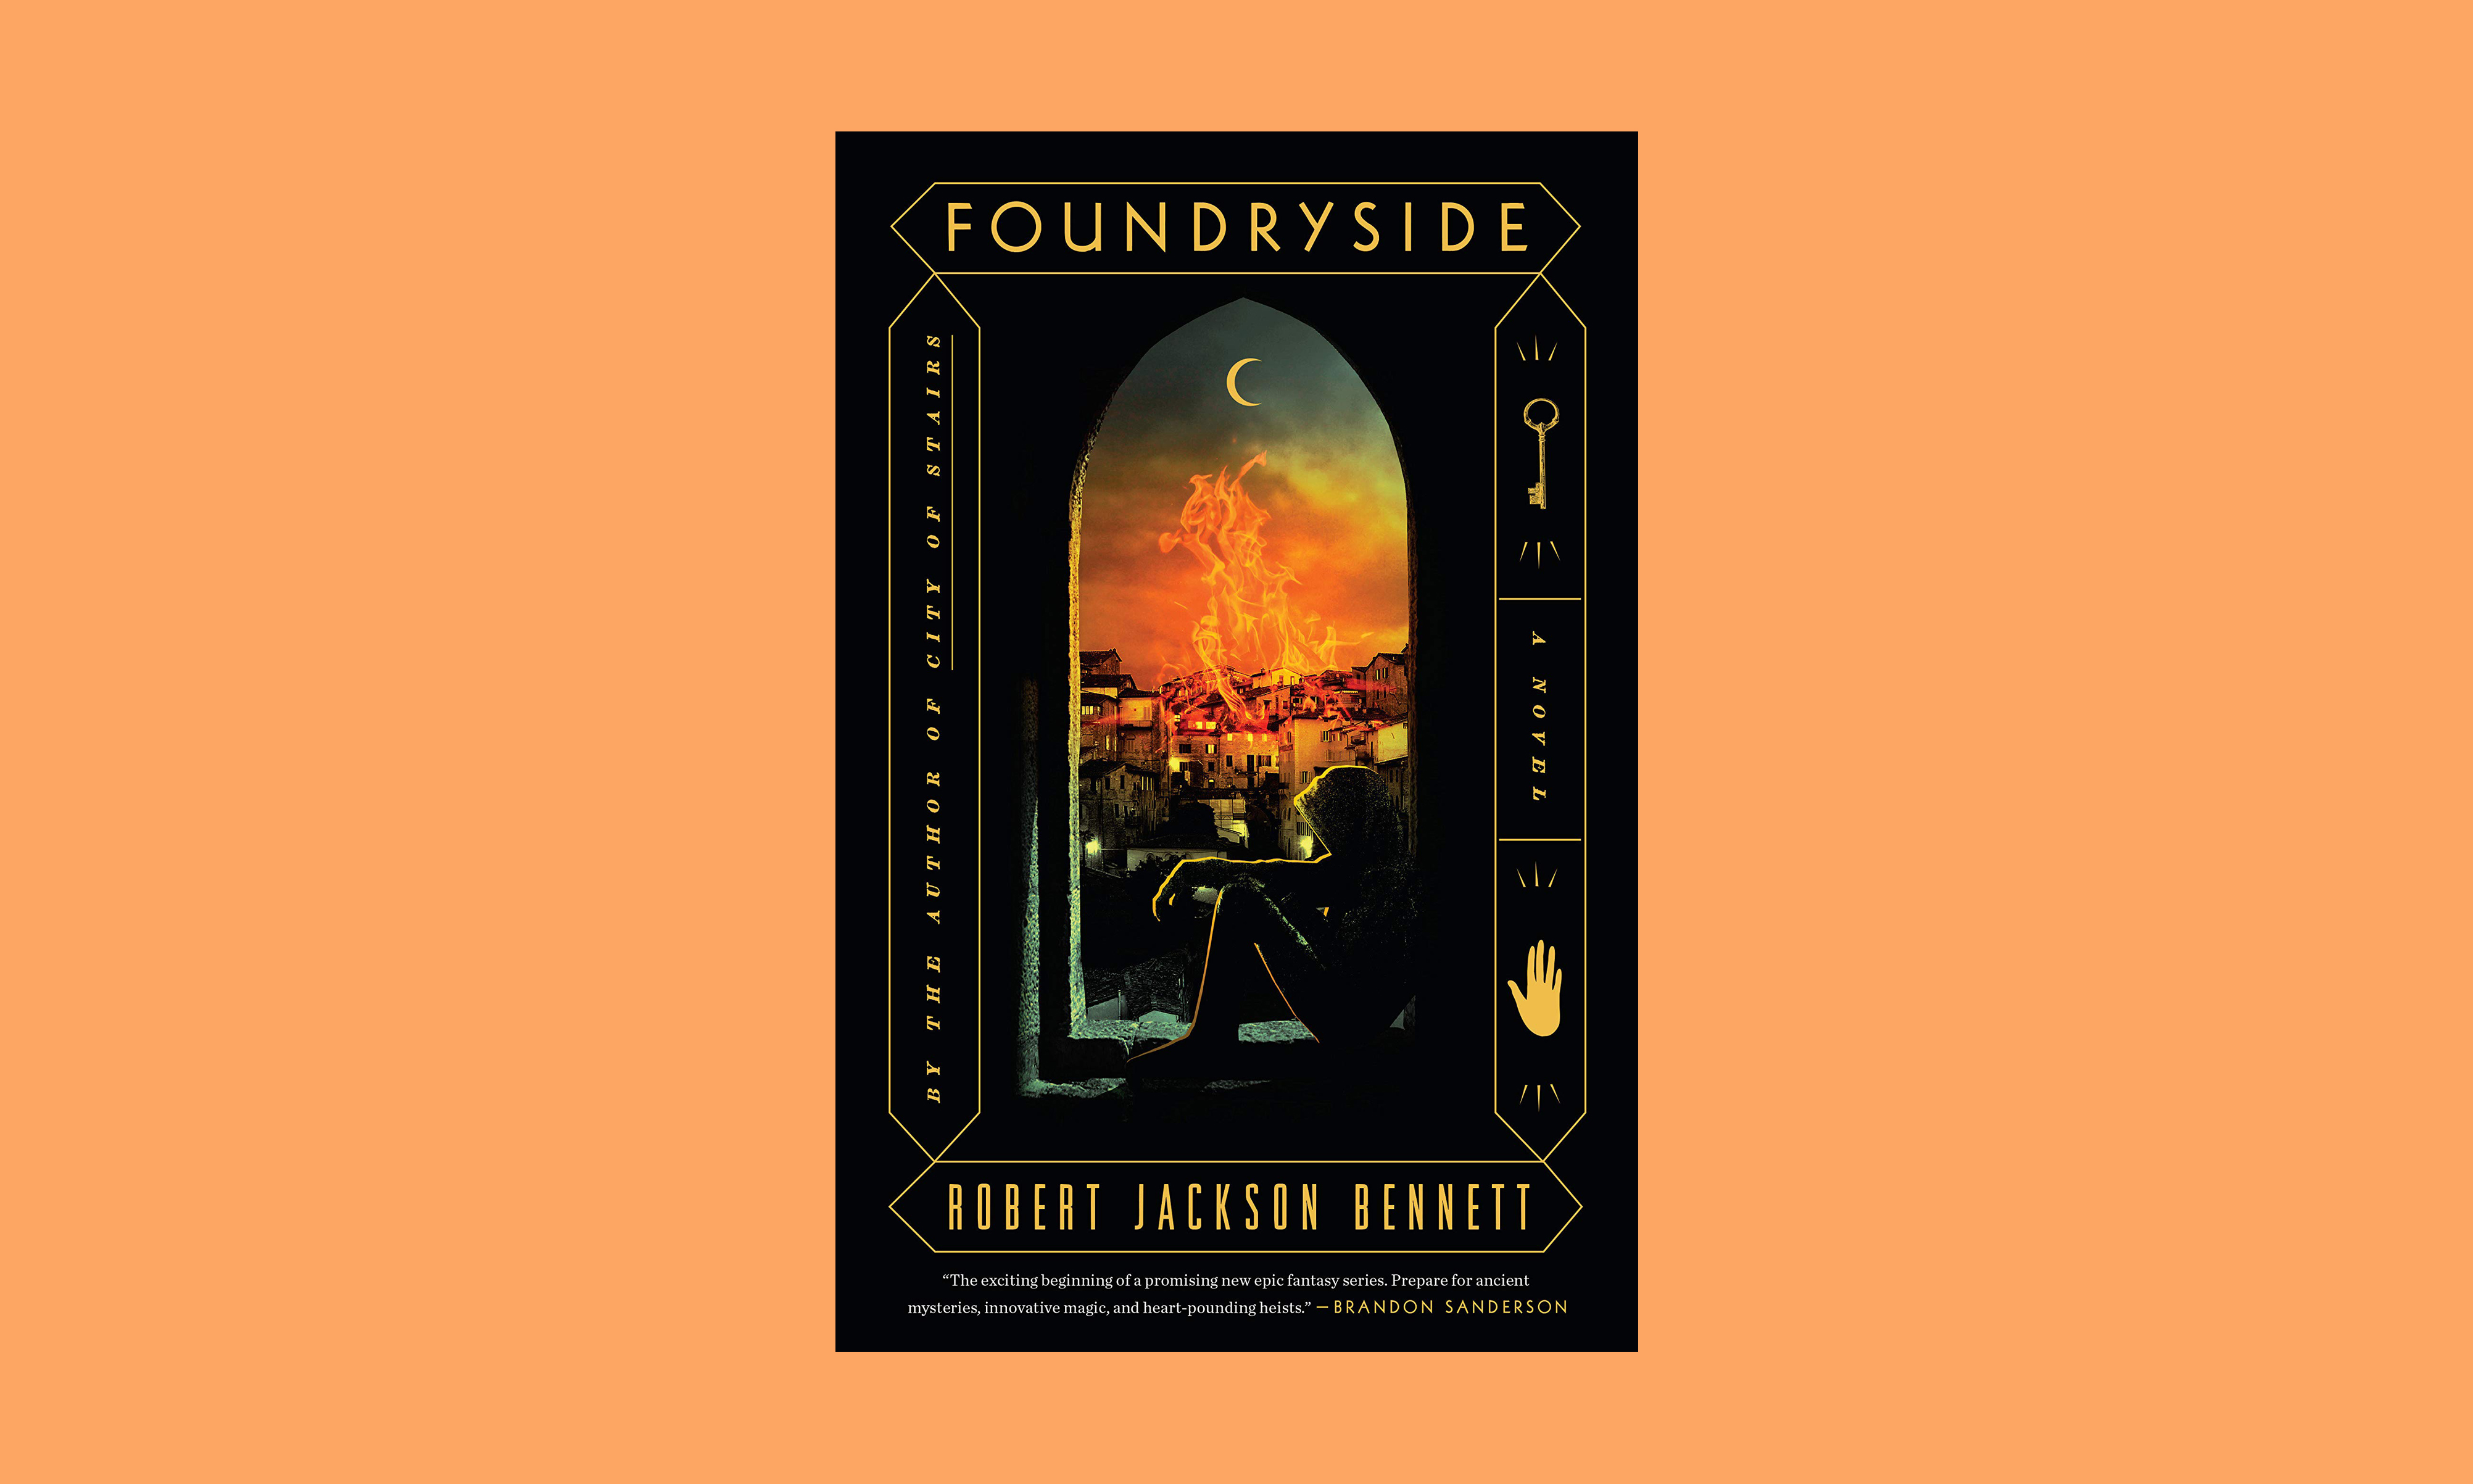 Foundryside Robert Jackson Bennett